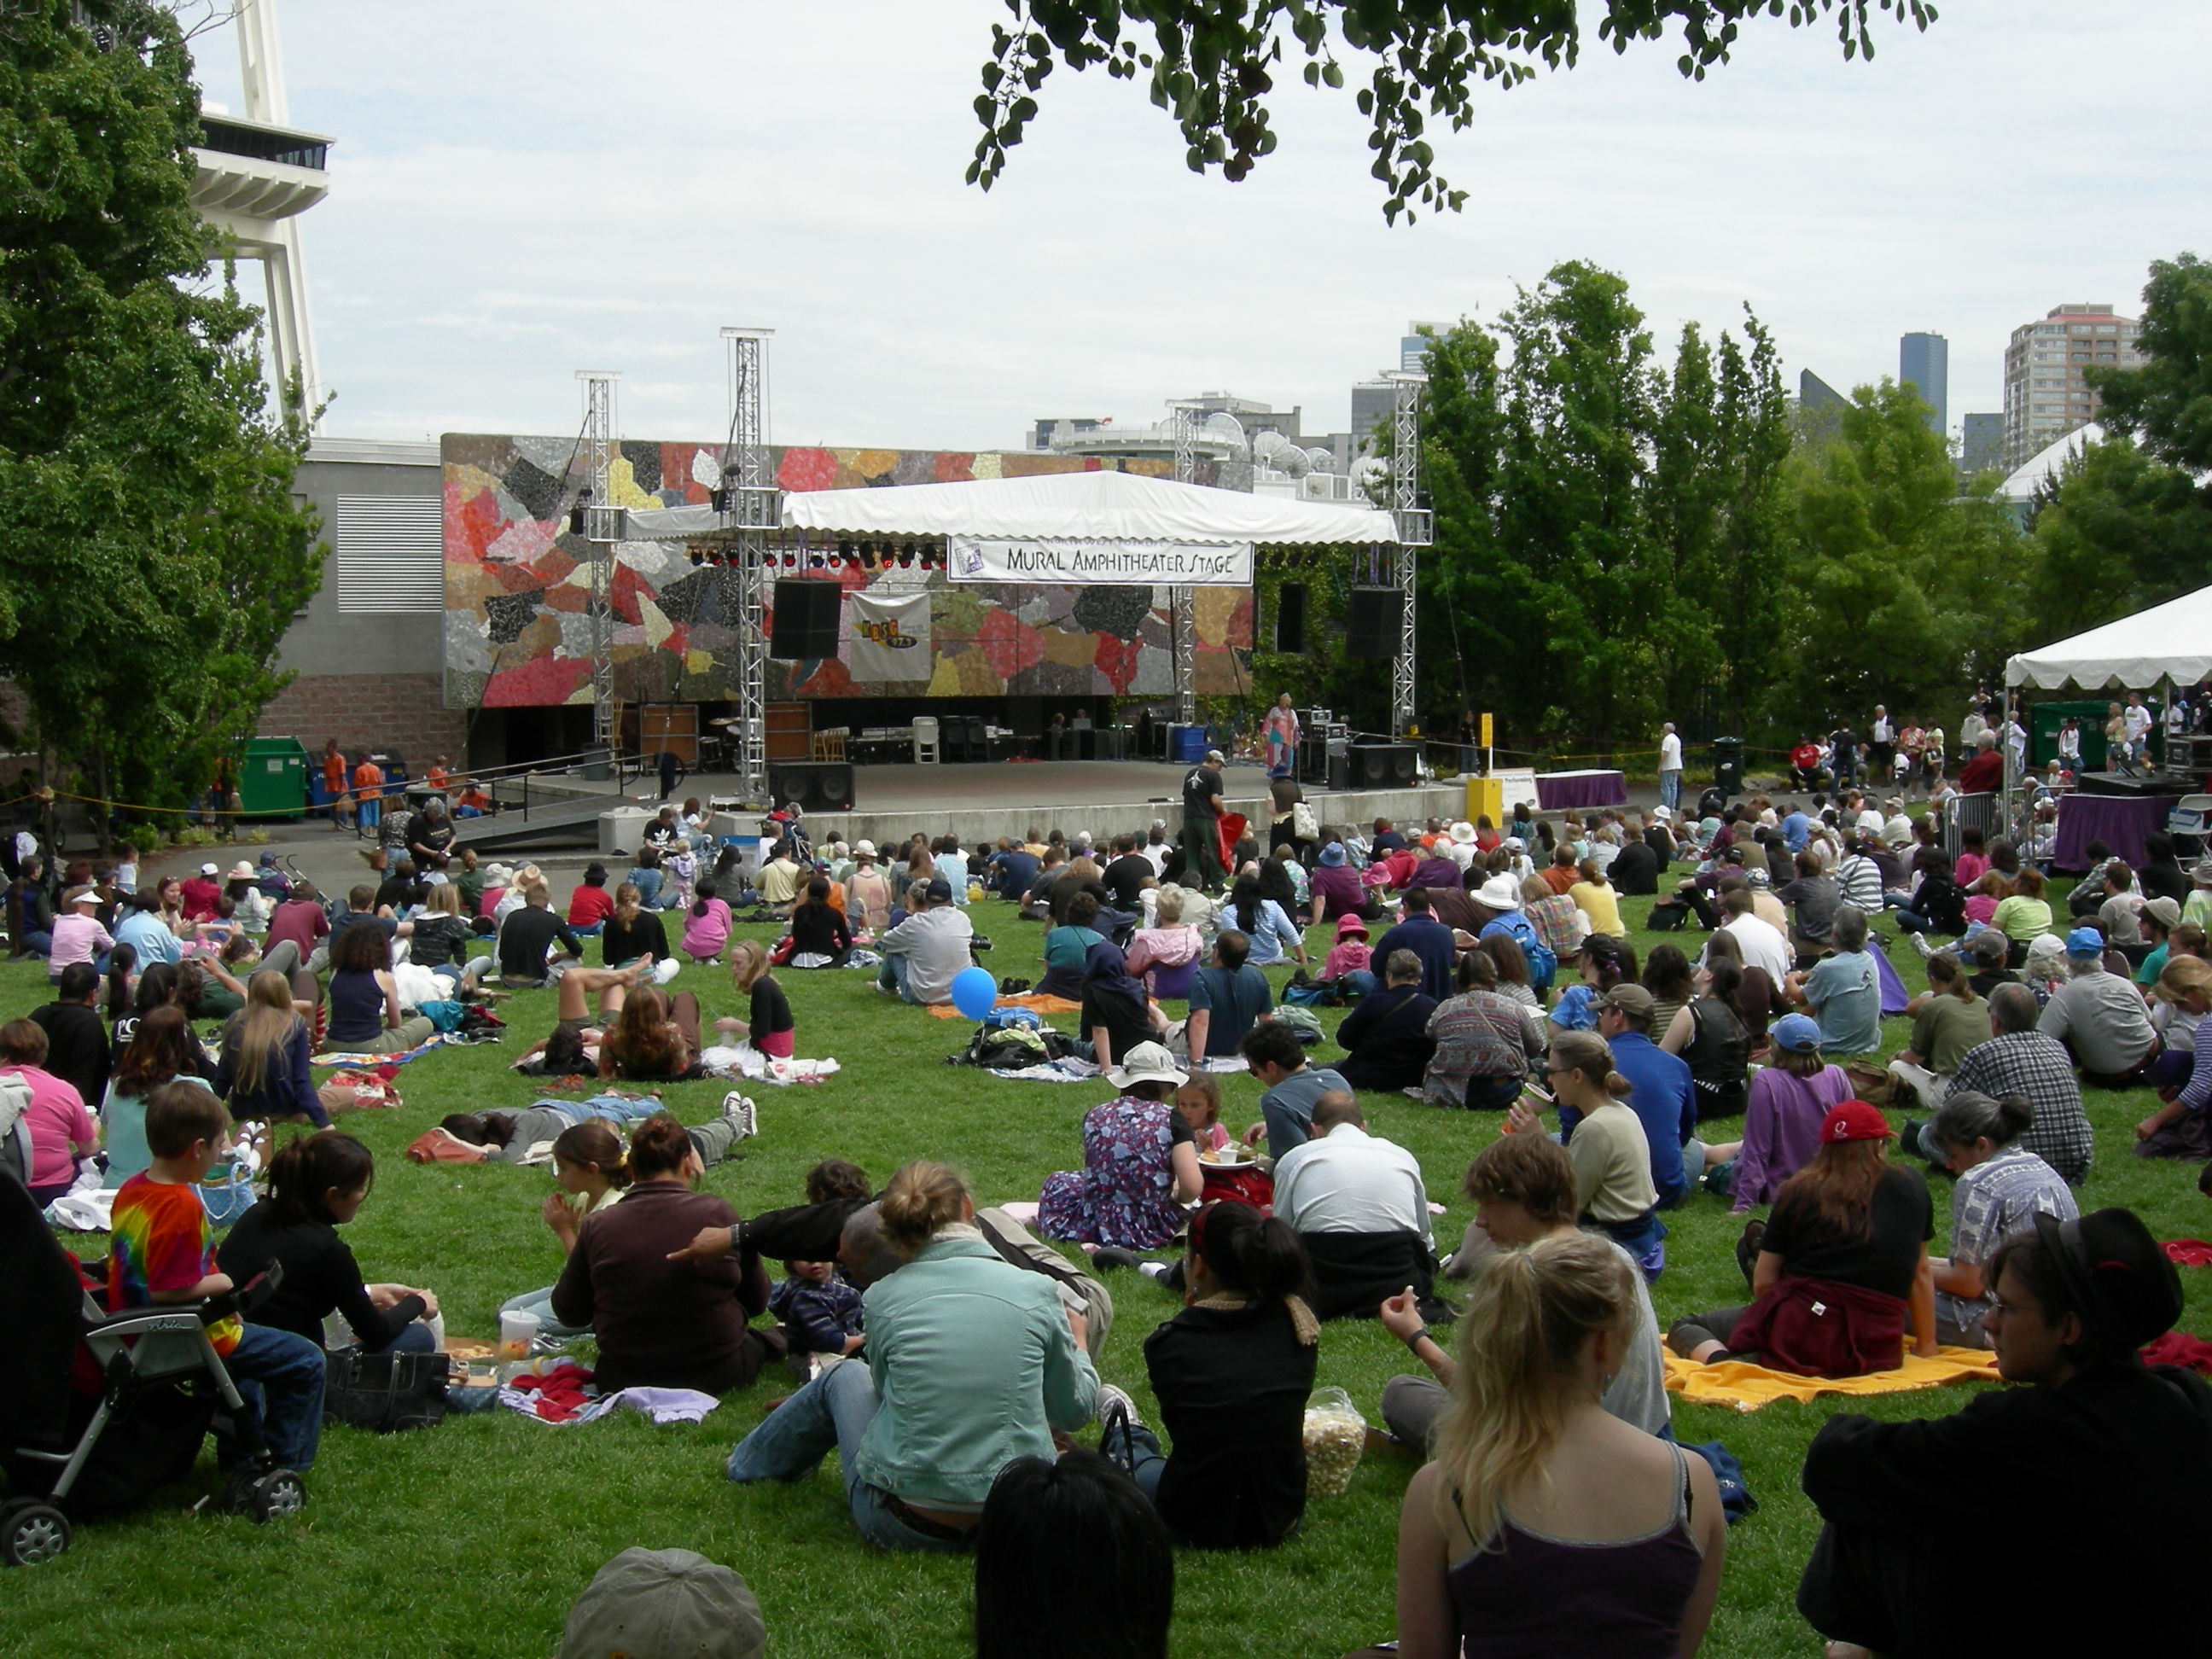 Seattle_Folklife_-_Mural_Amphitheater